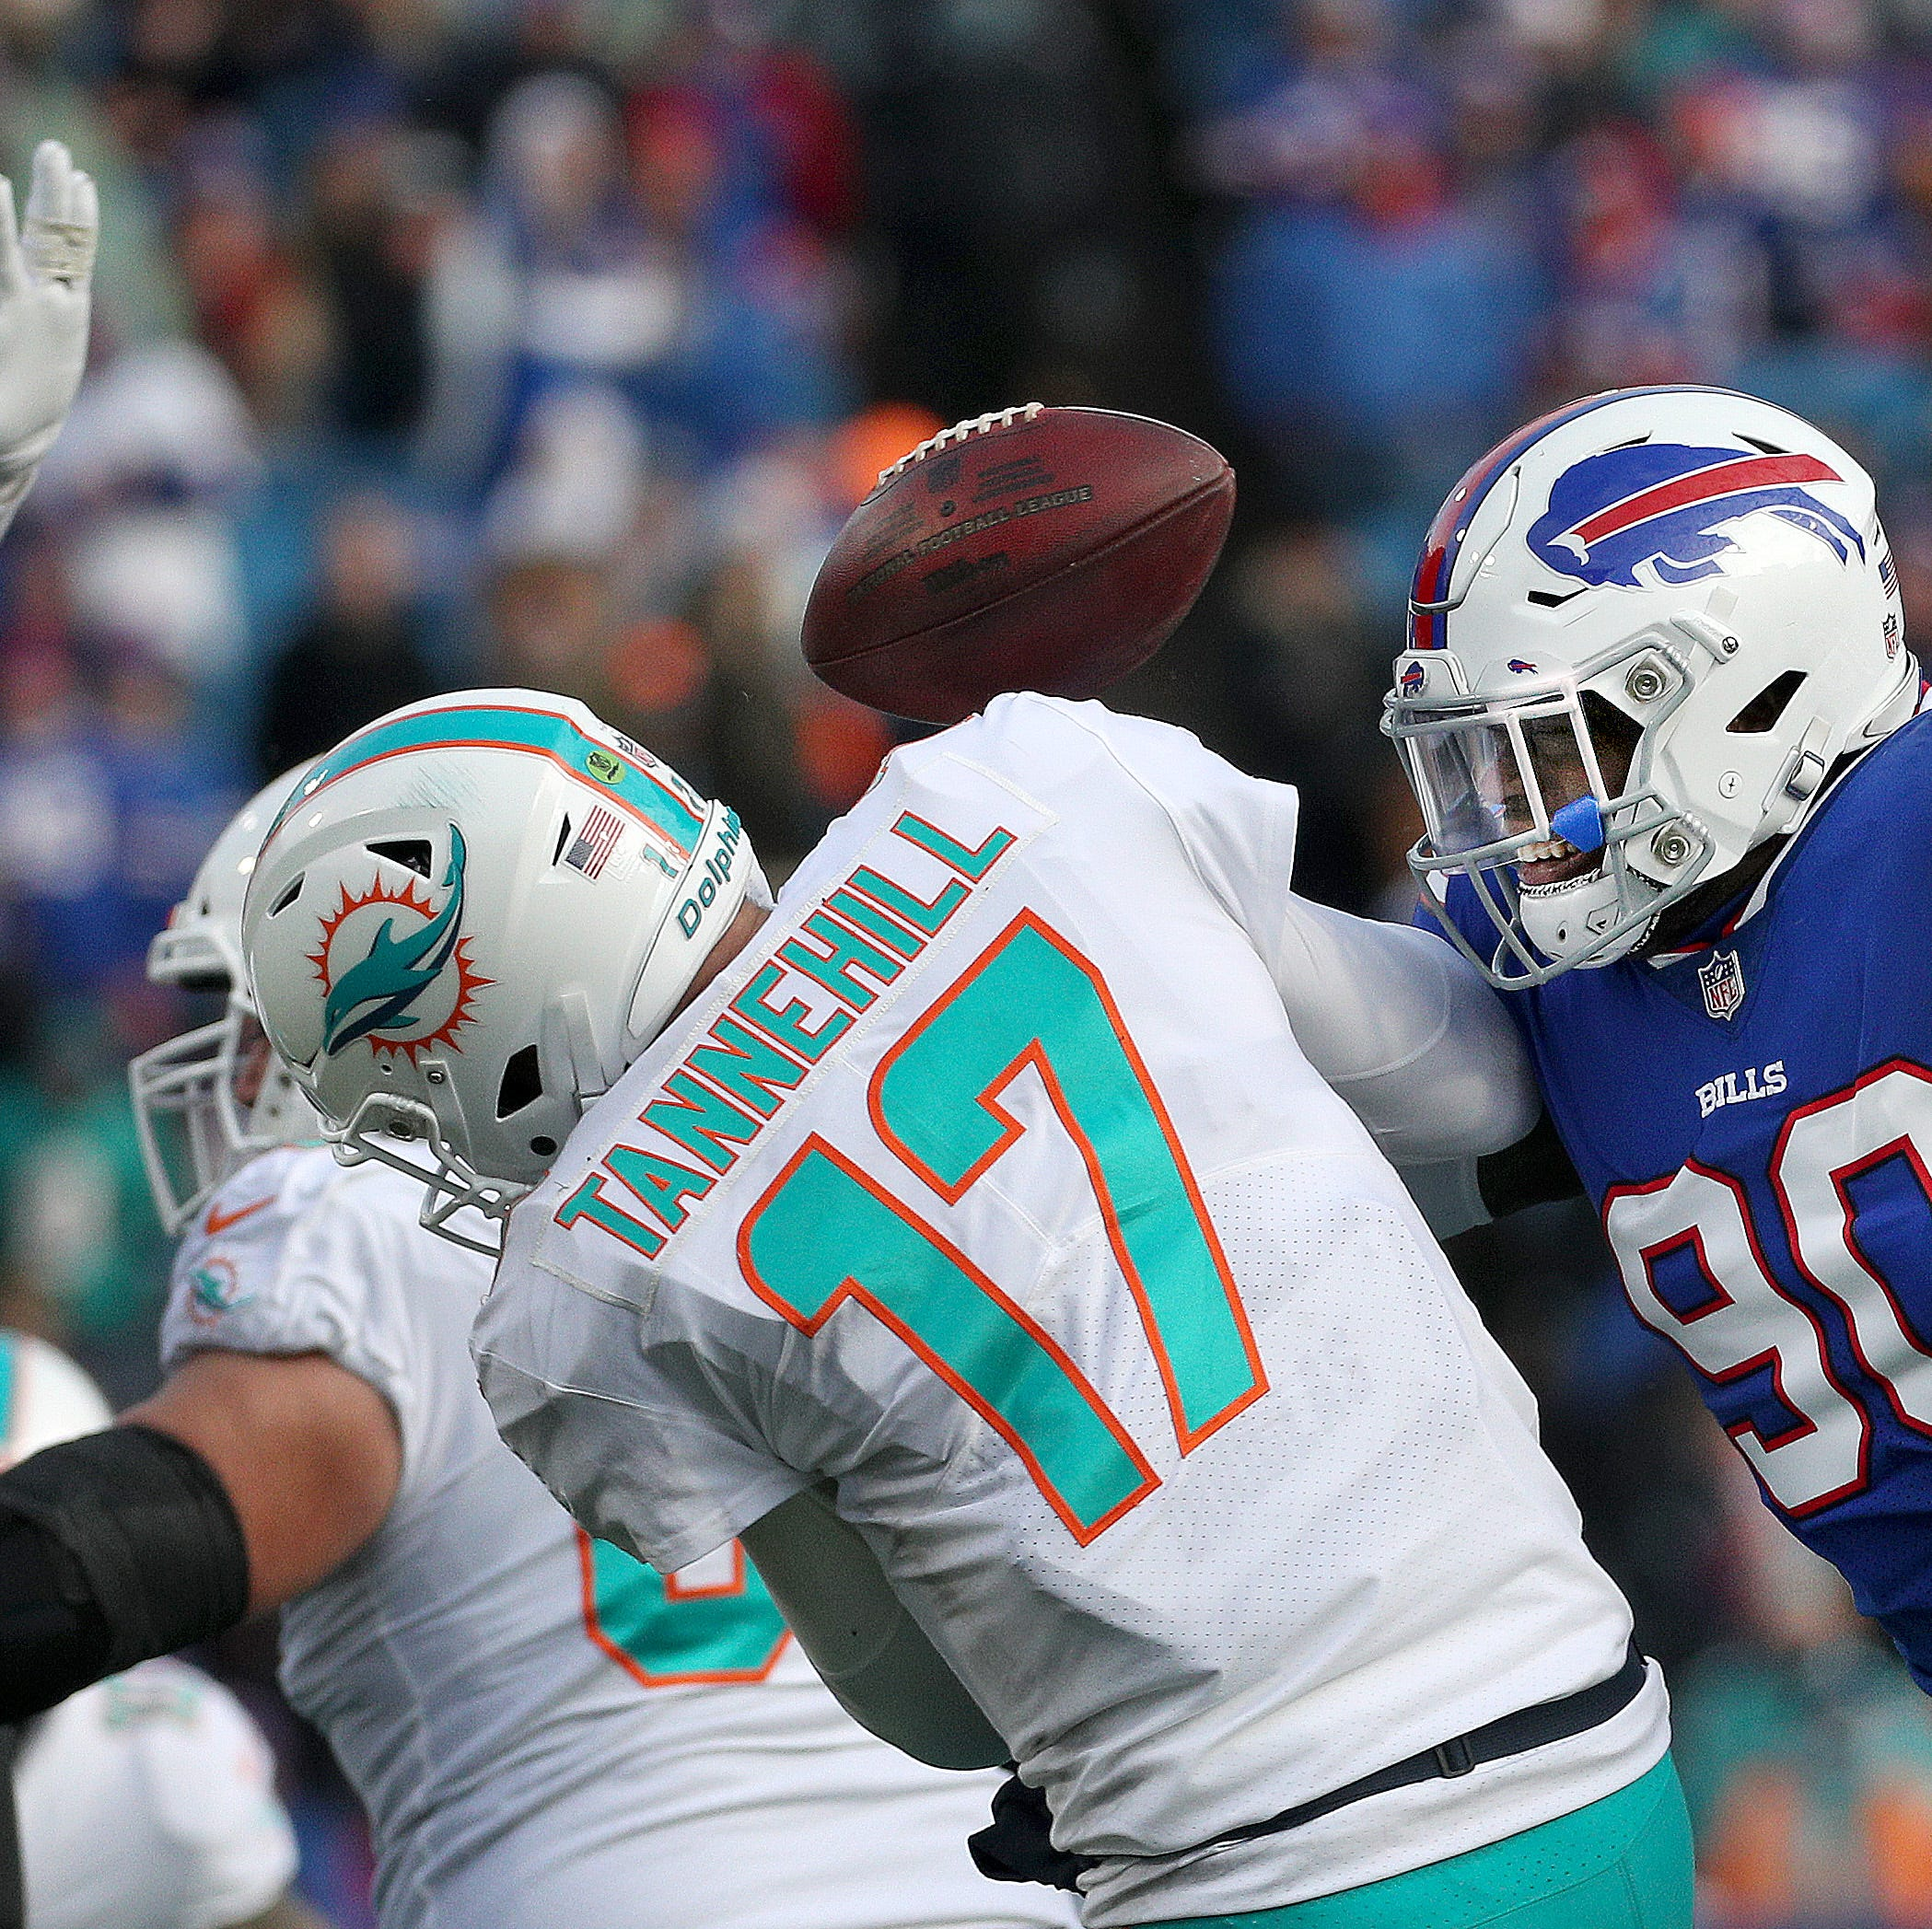 Shaq Lawson was improved in 2018, but should Bills invest a fifth year in him?